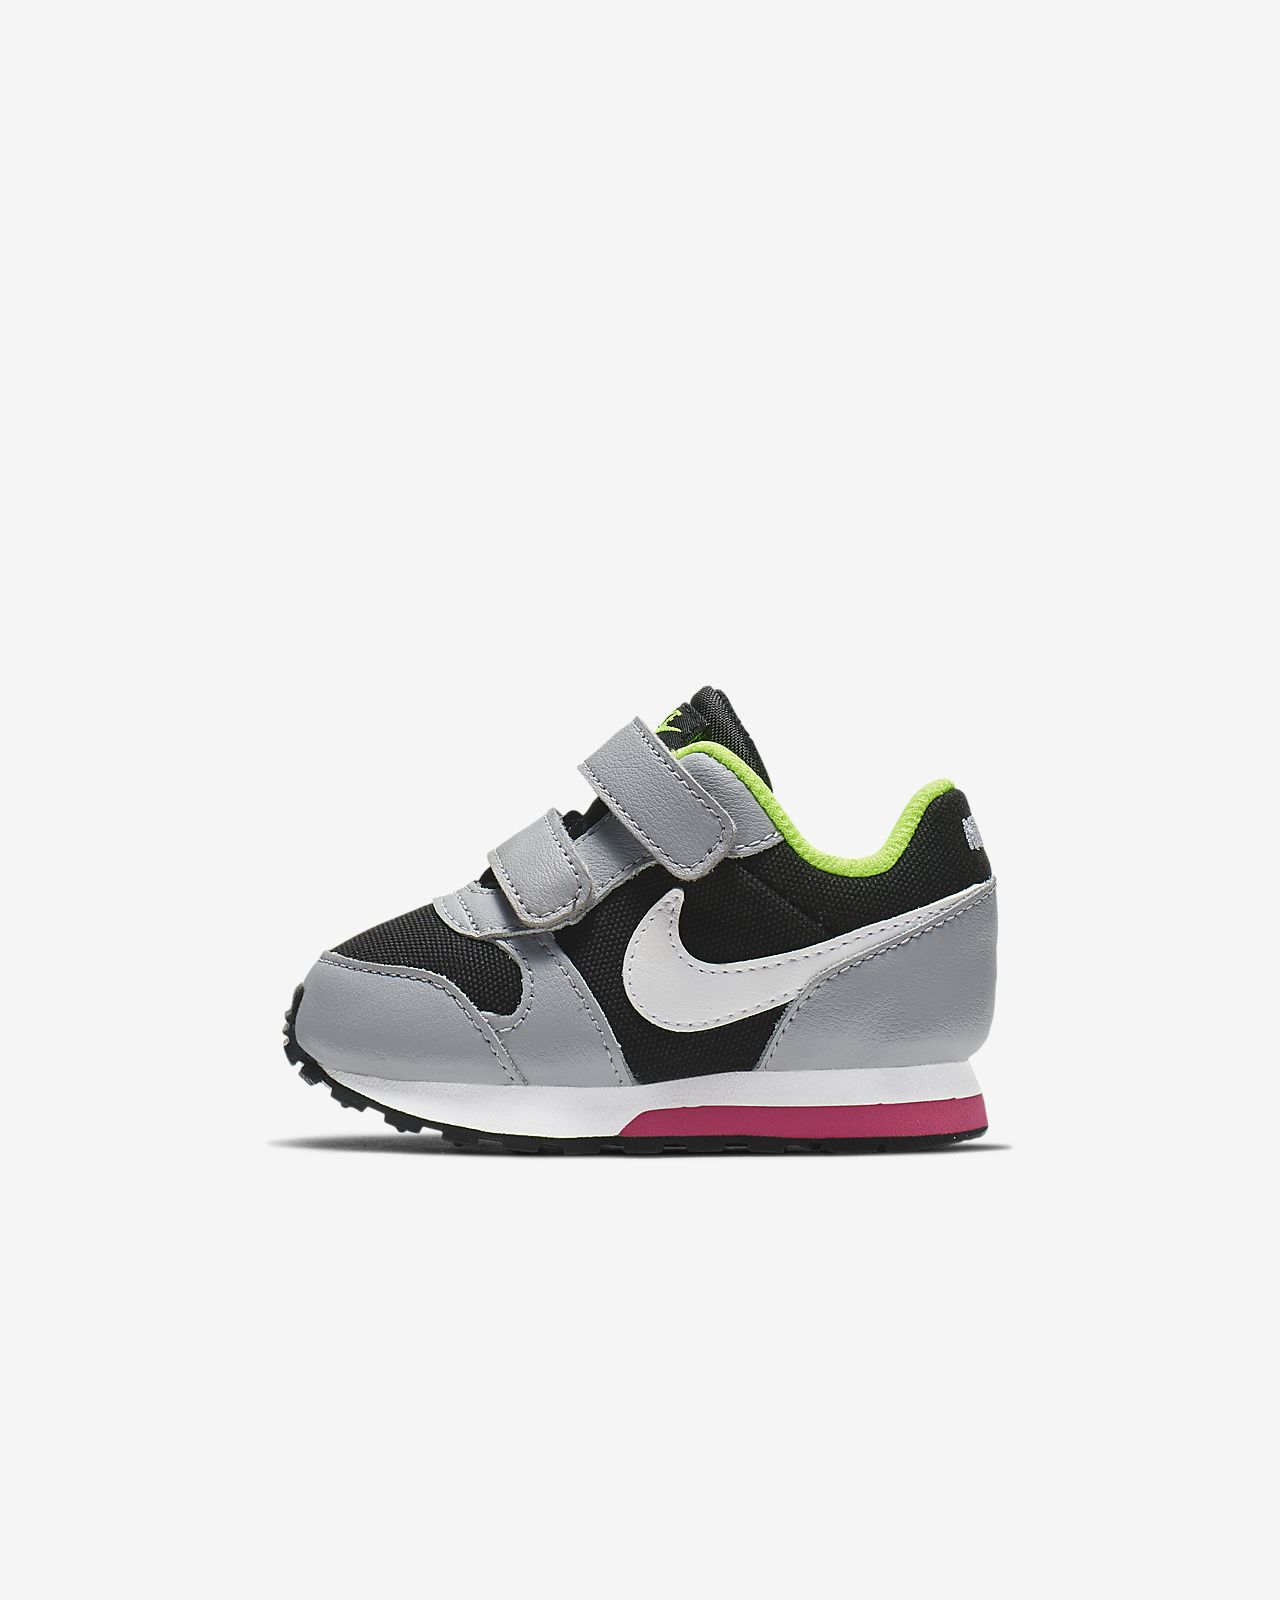 85f3169f74 Nike MD Runner 2 Baby & Toddler Shoe. Nike.com GB